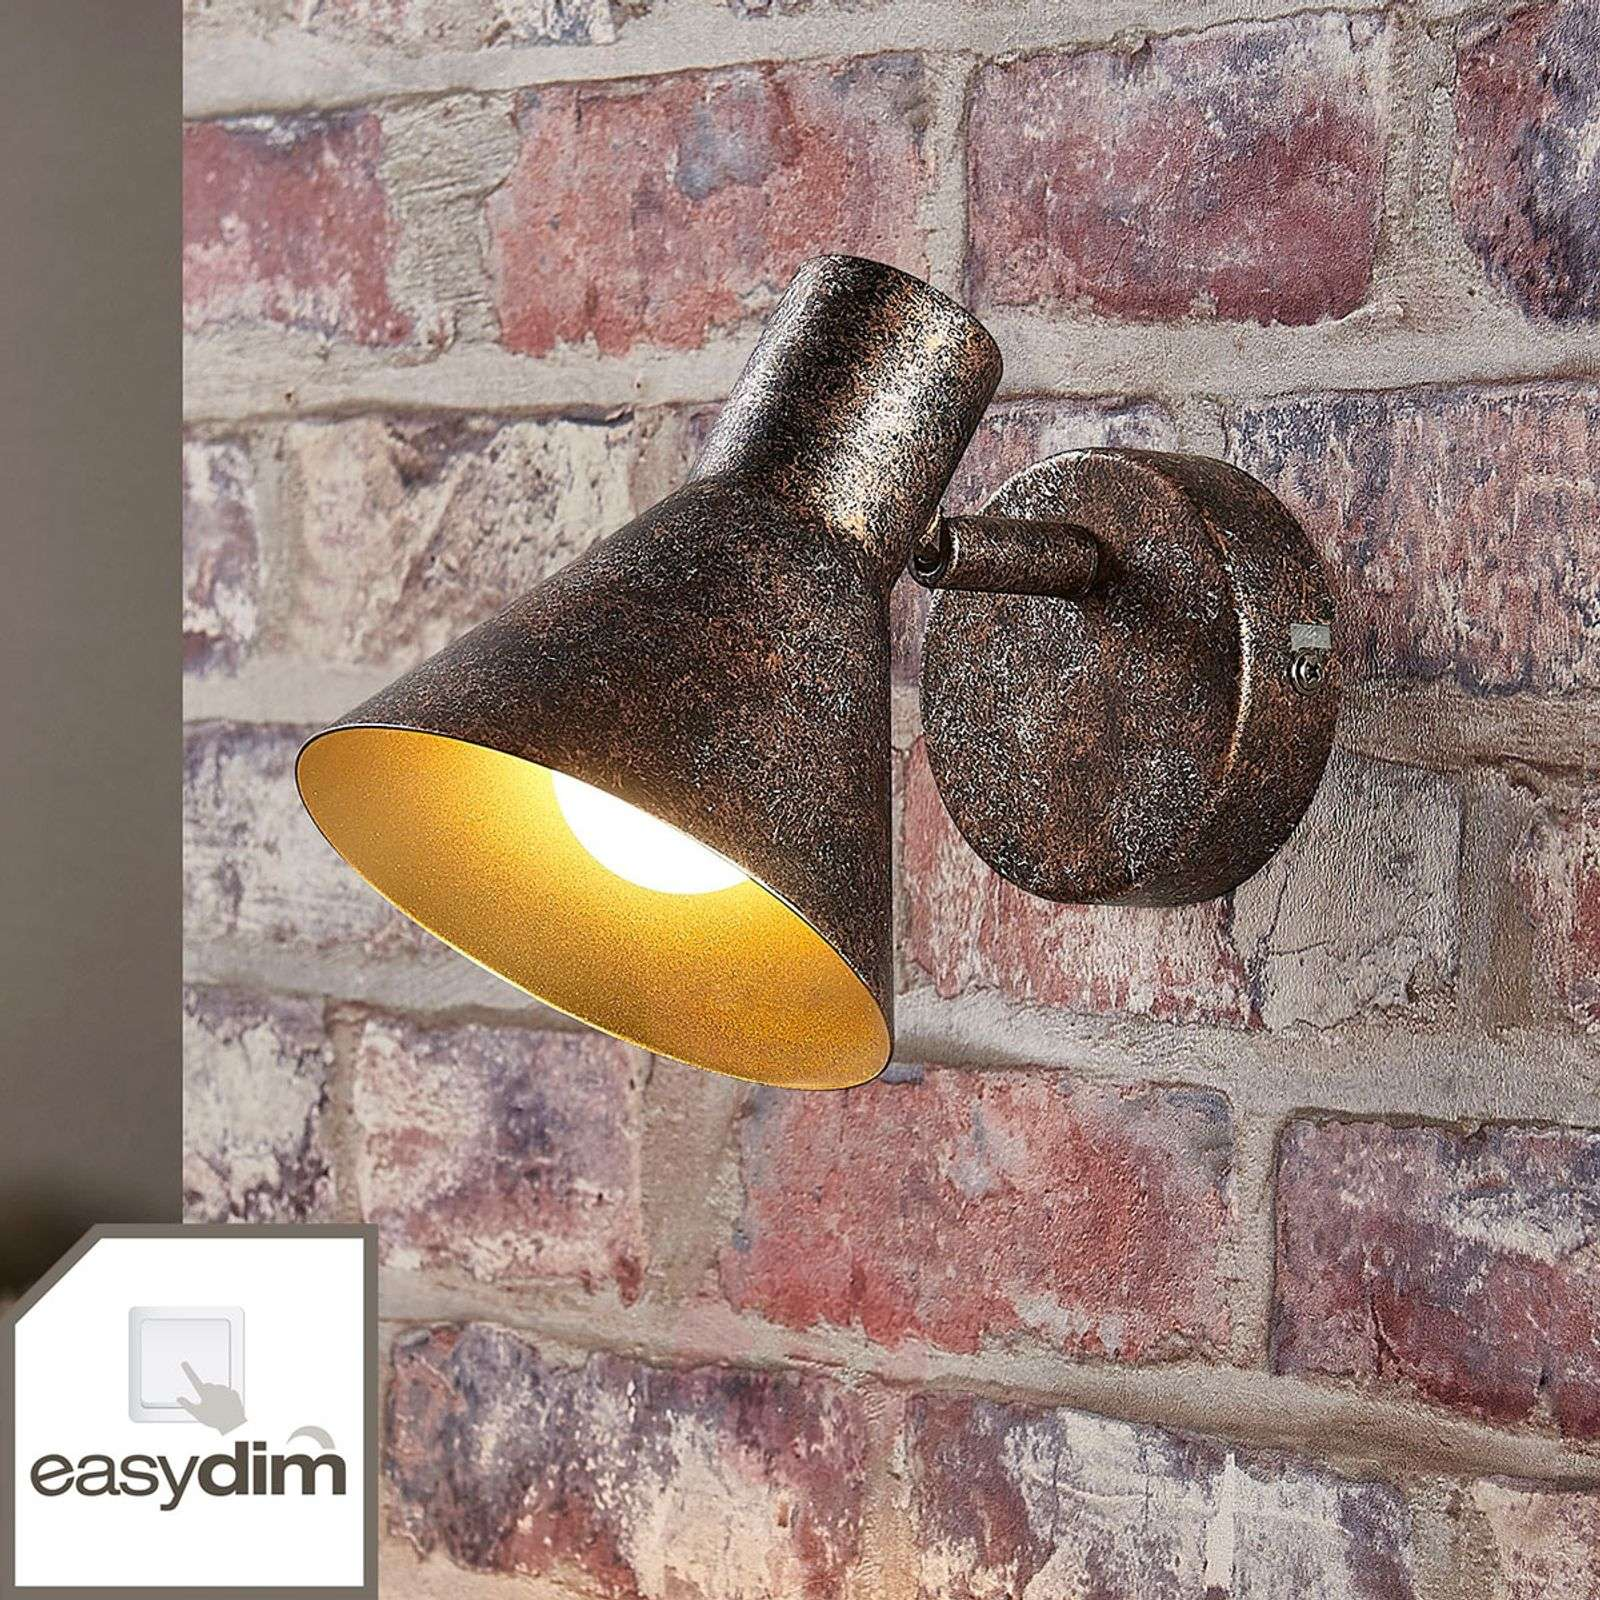 Rust-coloured LED wall light Zera, gold interior-9621539-02